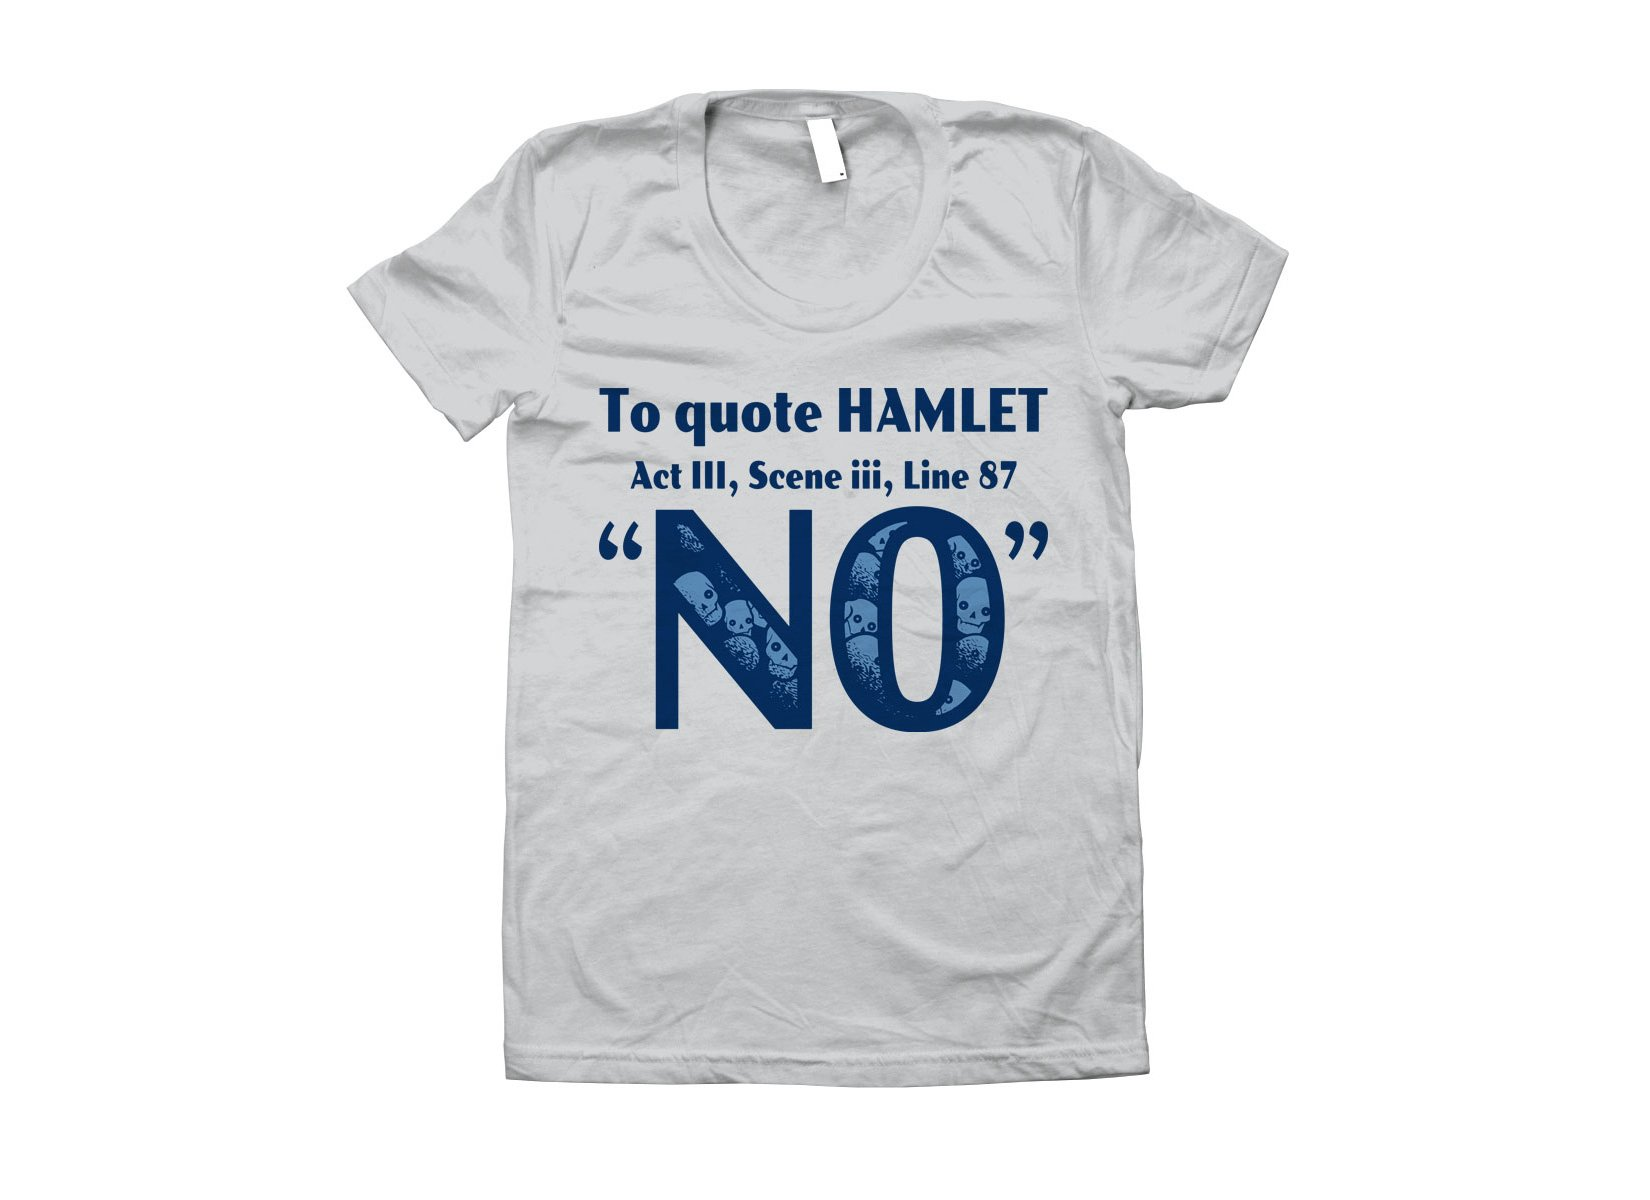 To Quote Hamlet on Juniors T-Shirt